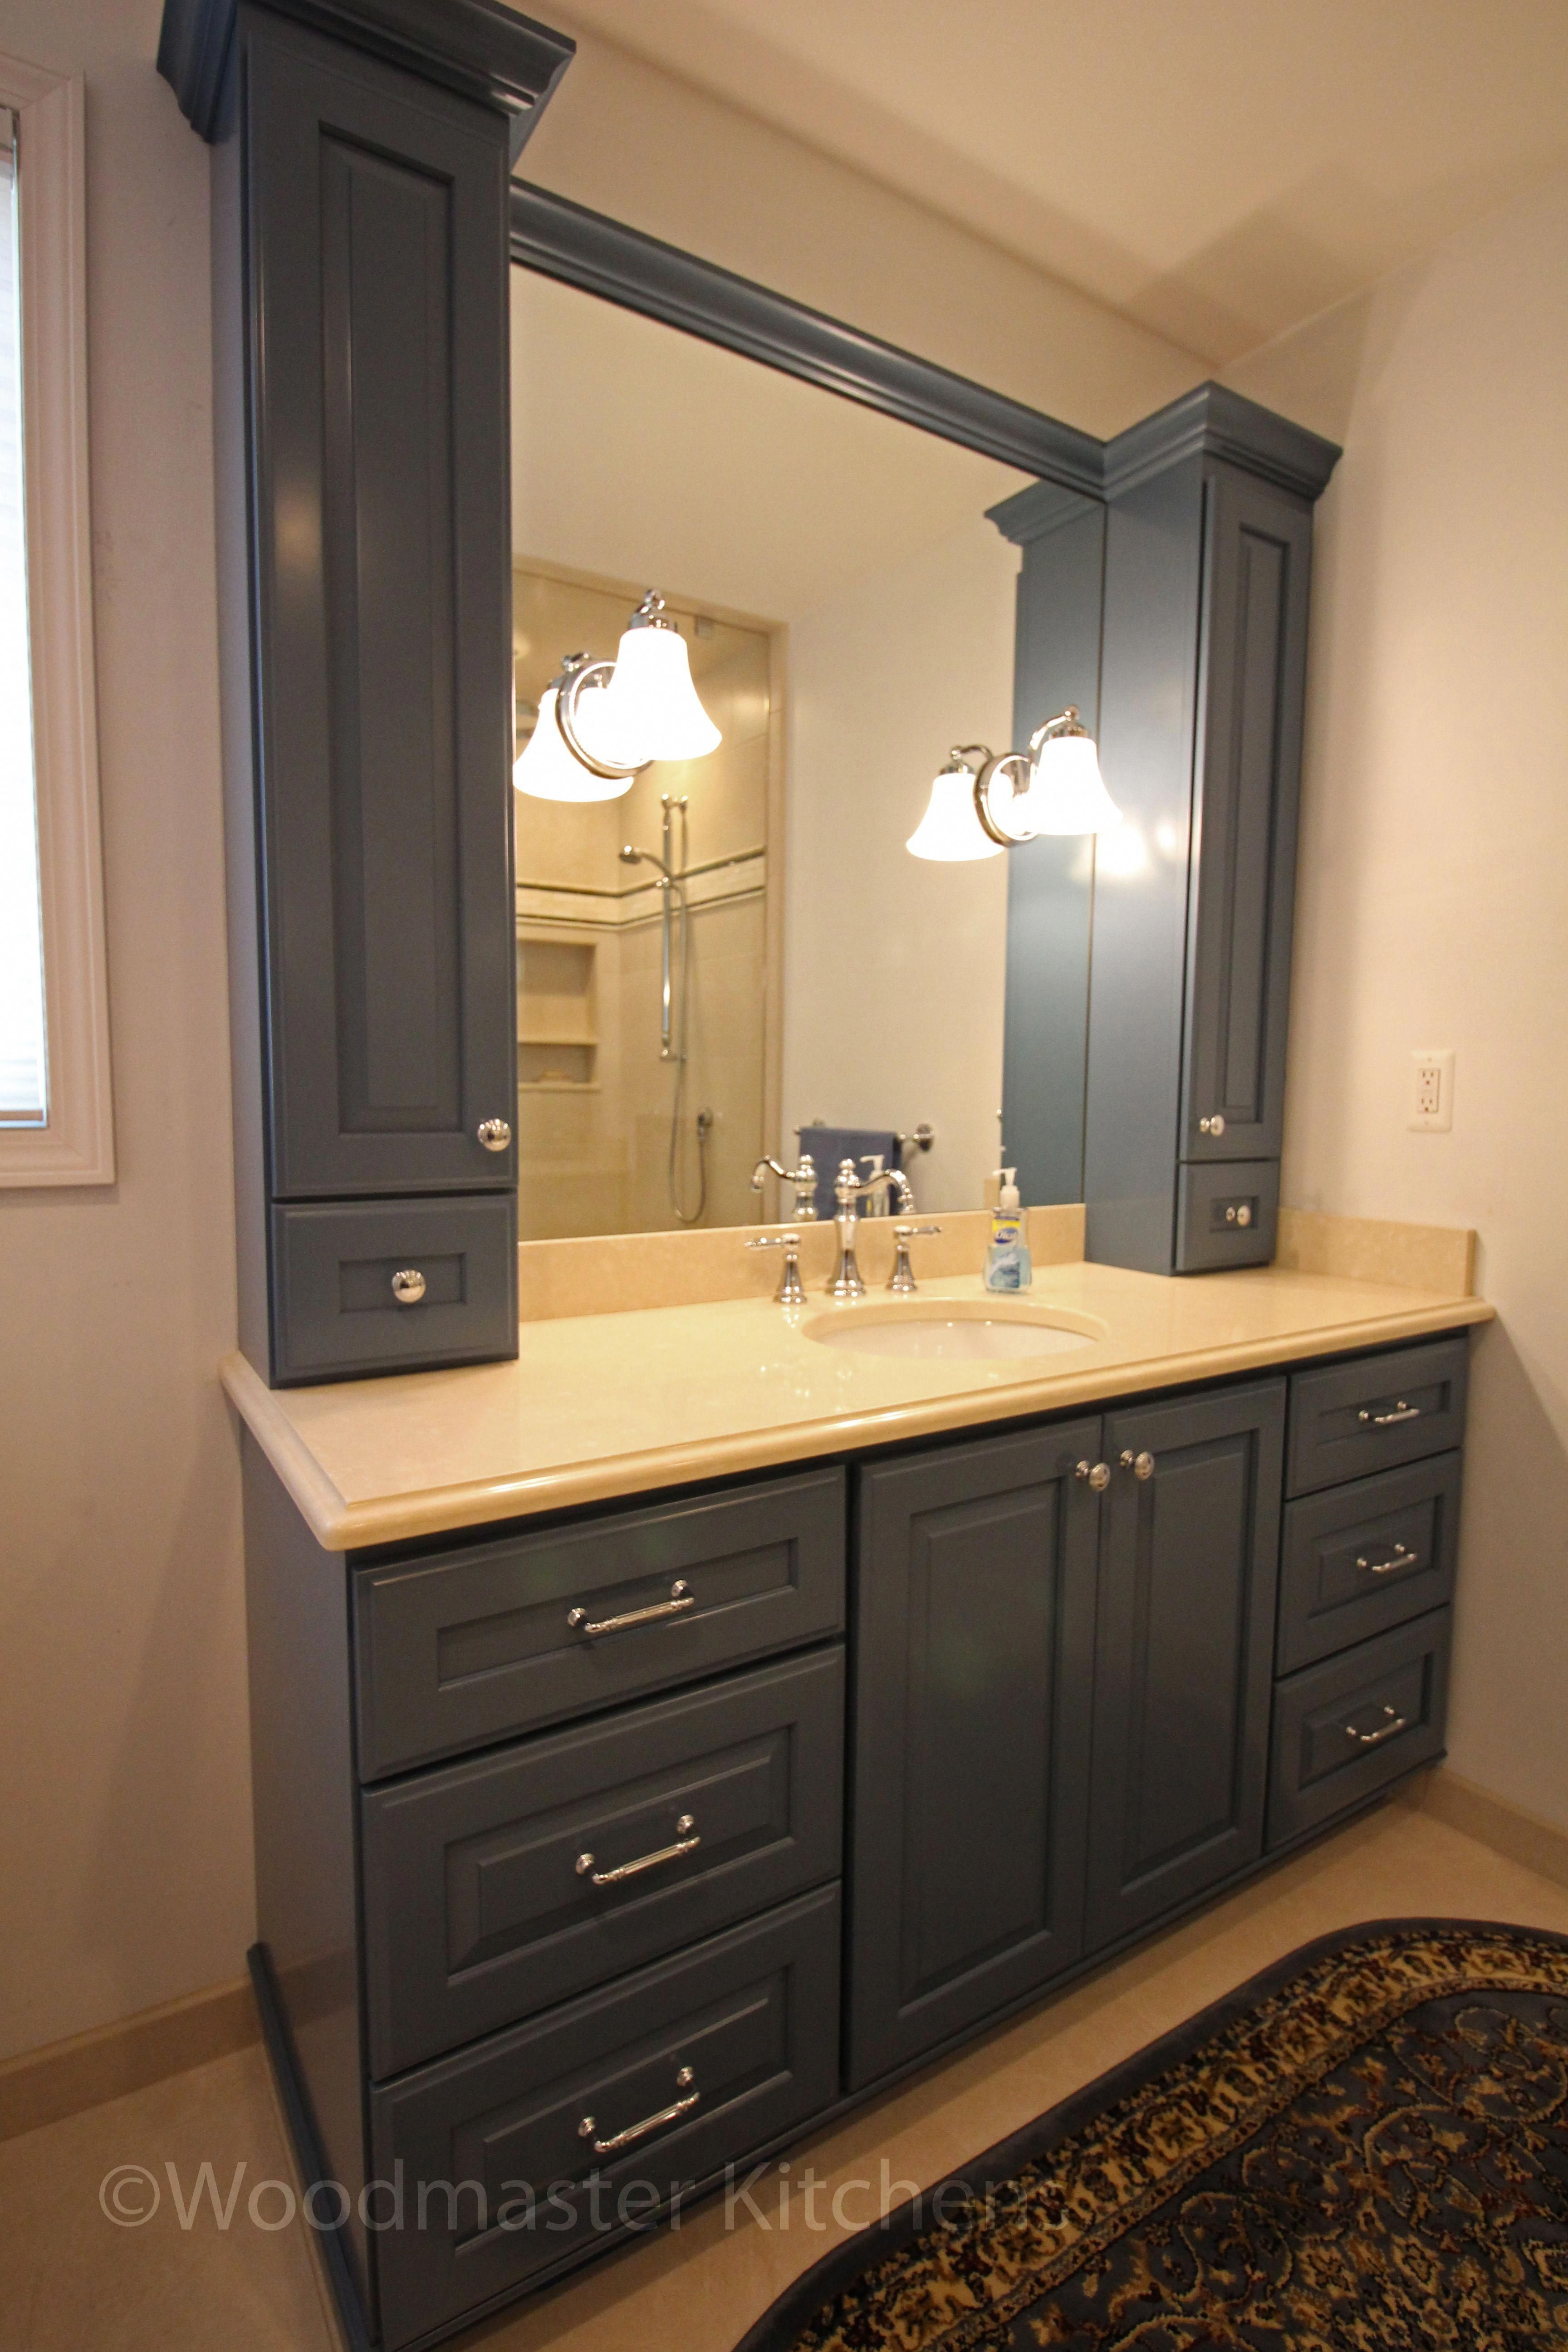 20 Framed Bathroom Mirror Ideas For Double Vanity Single Sink With Light With Images Bathroom Mirror Cabinet Traditional Bathroom Bathroom Mirror Makeover [ 5184 x 3456 Pixel ]